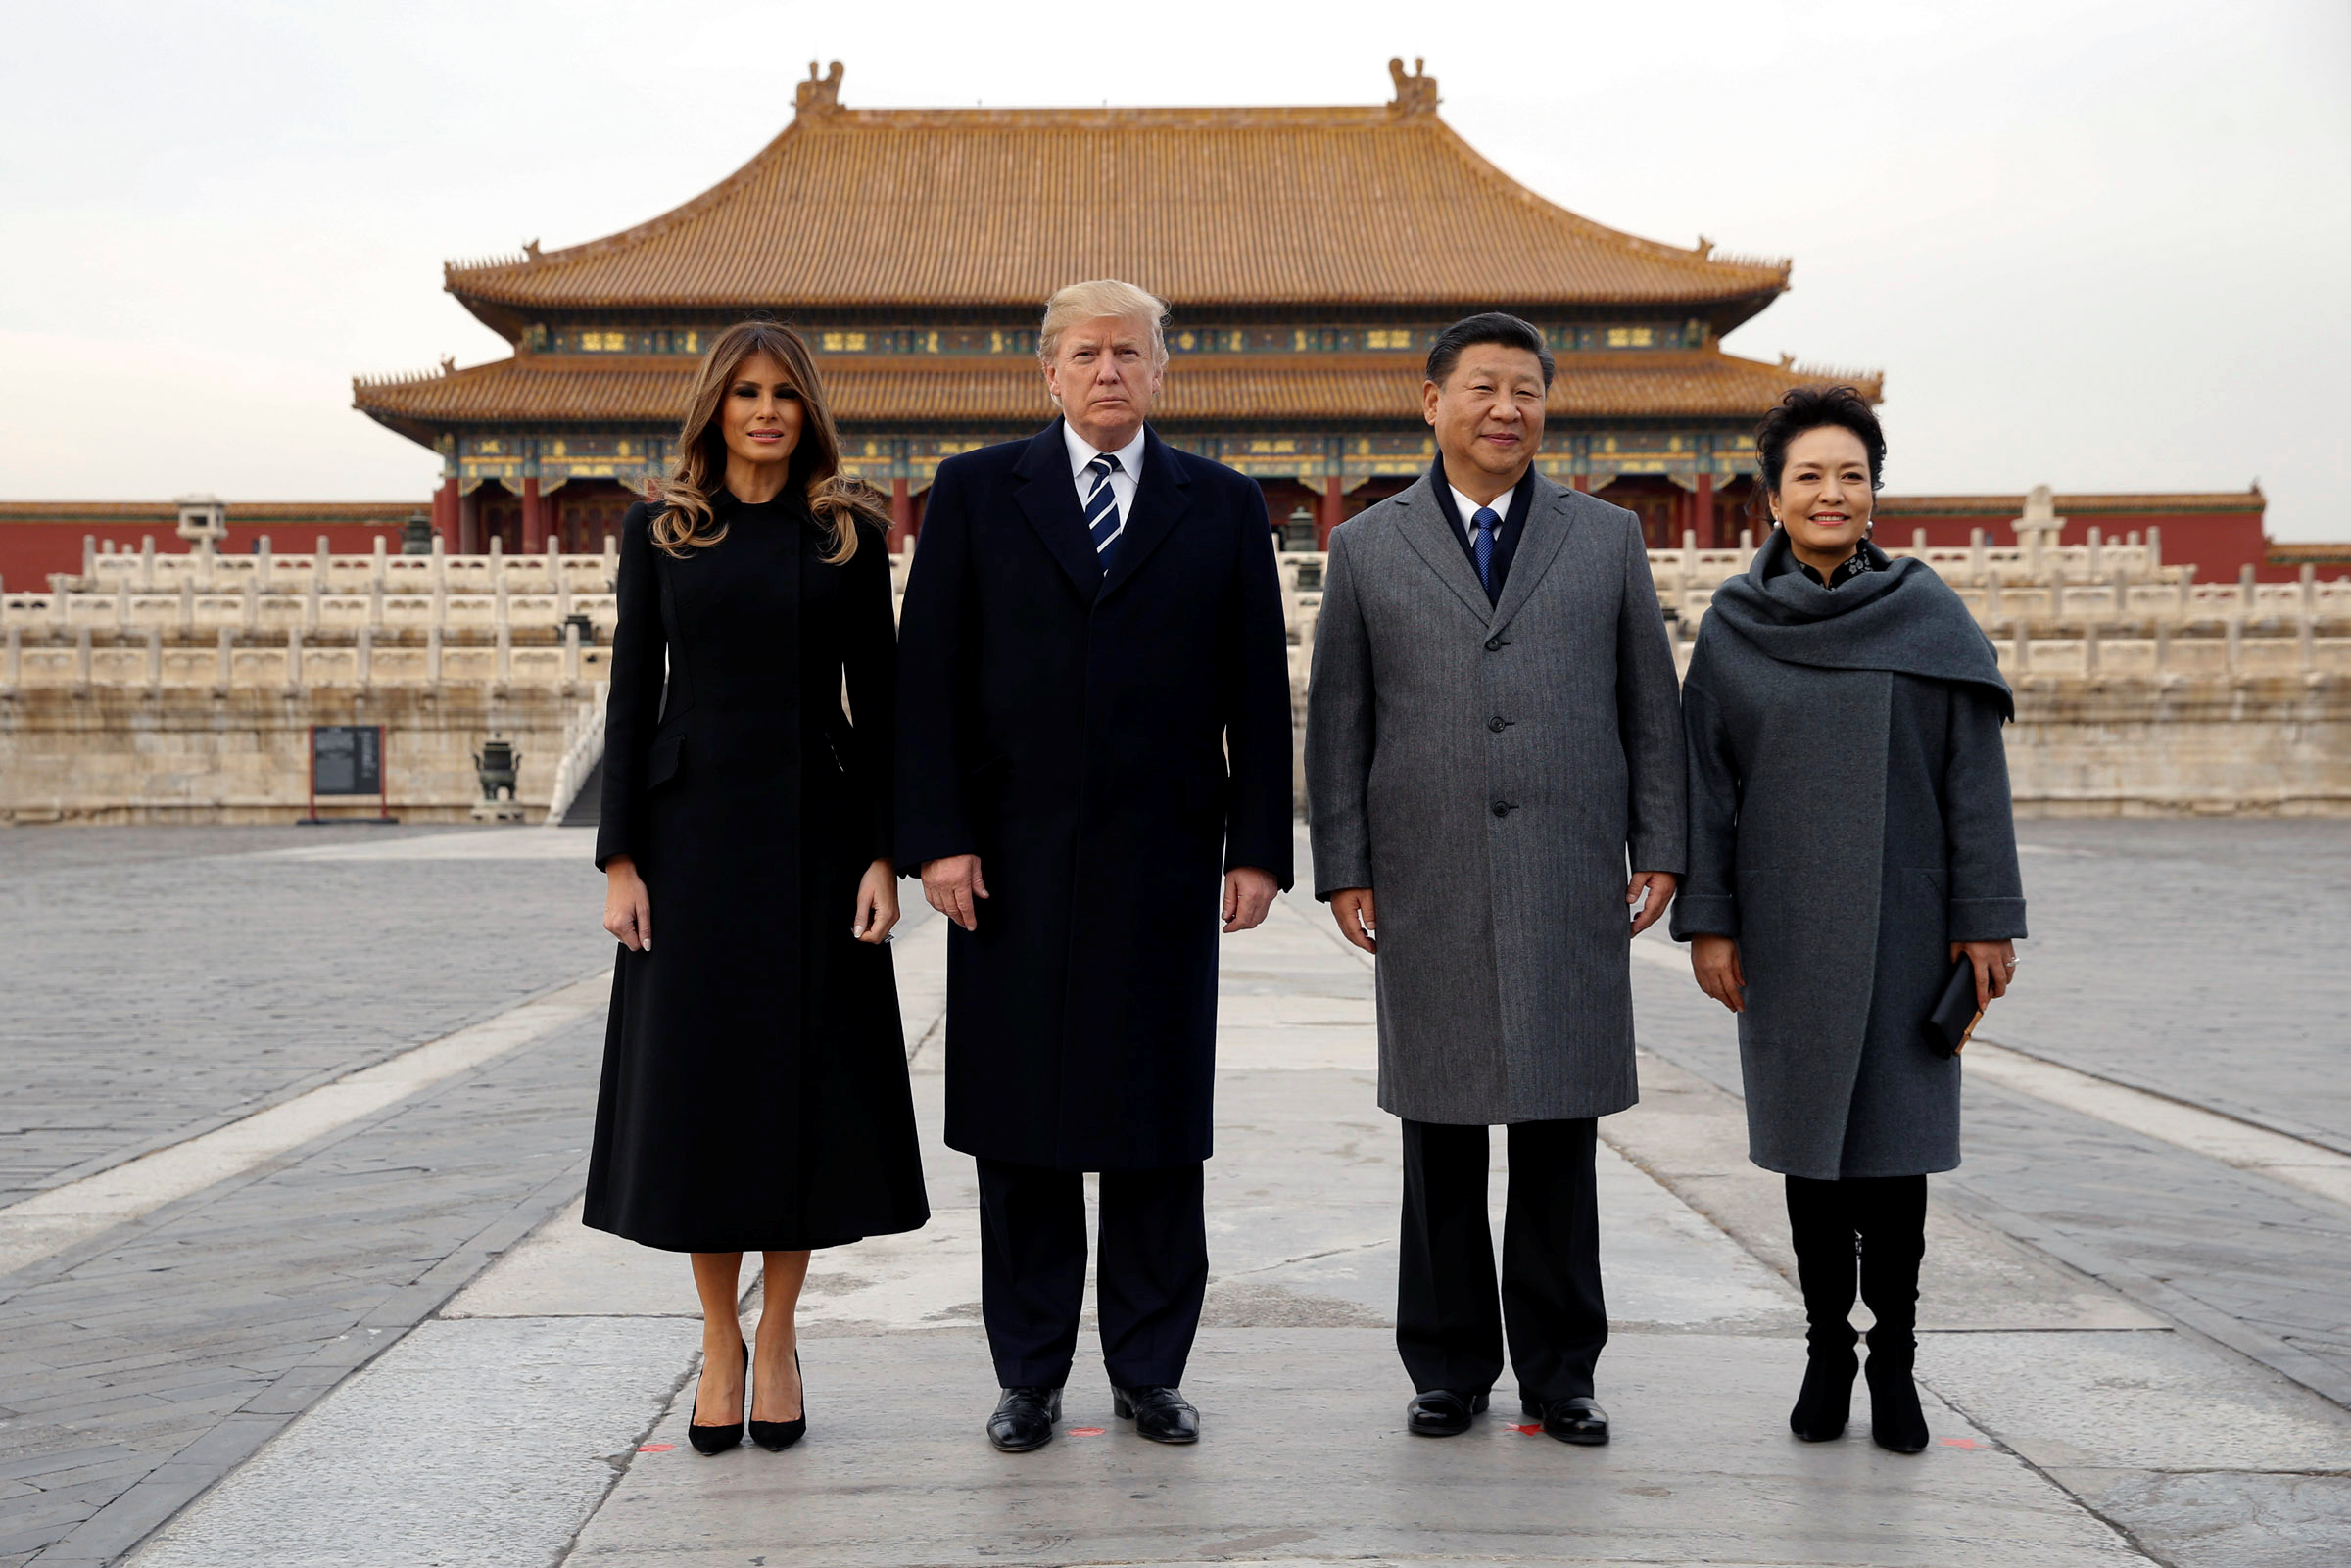 President Donald Trump and first lady Melania visit the Forbidden City with China's President Xi Jinping and China's First Lady Peng Liyuan on Nov. 8, 2017.